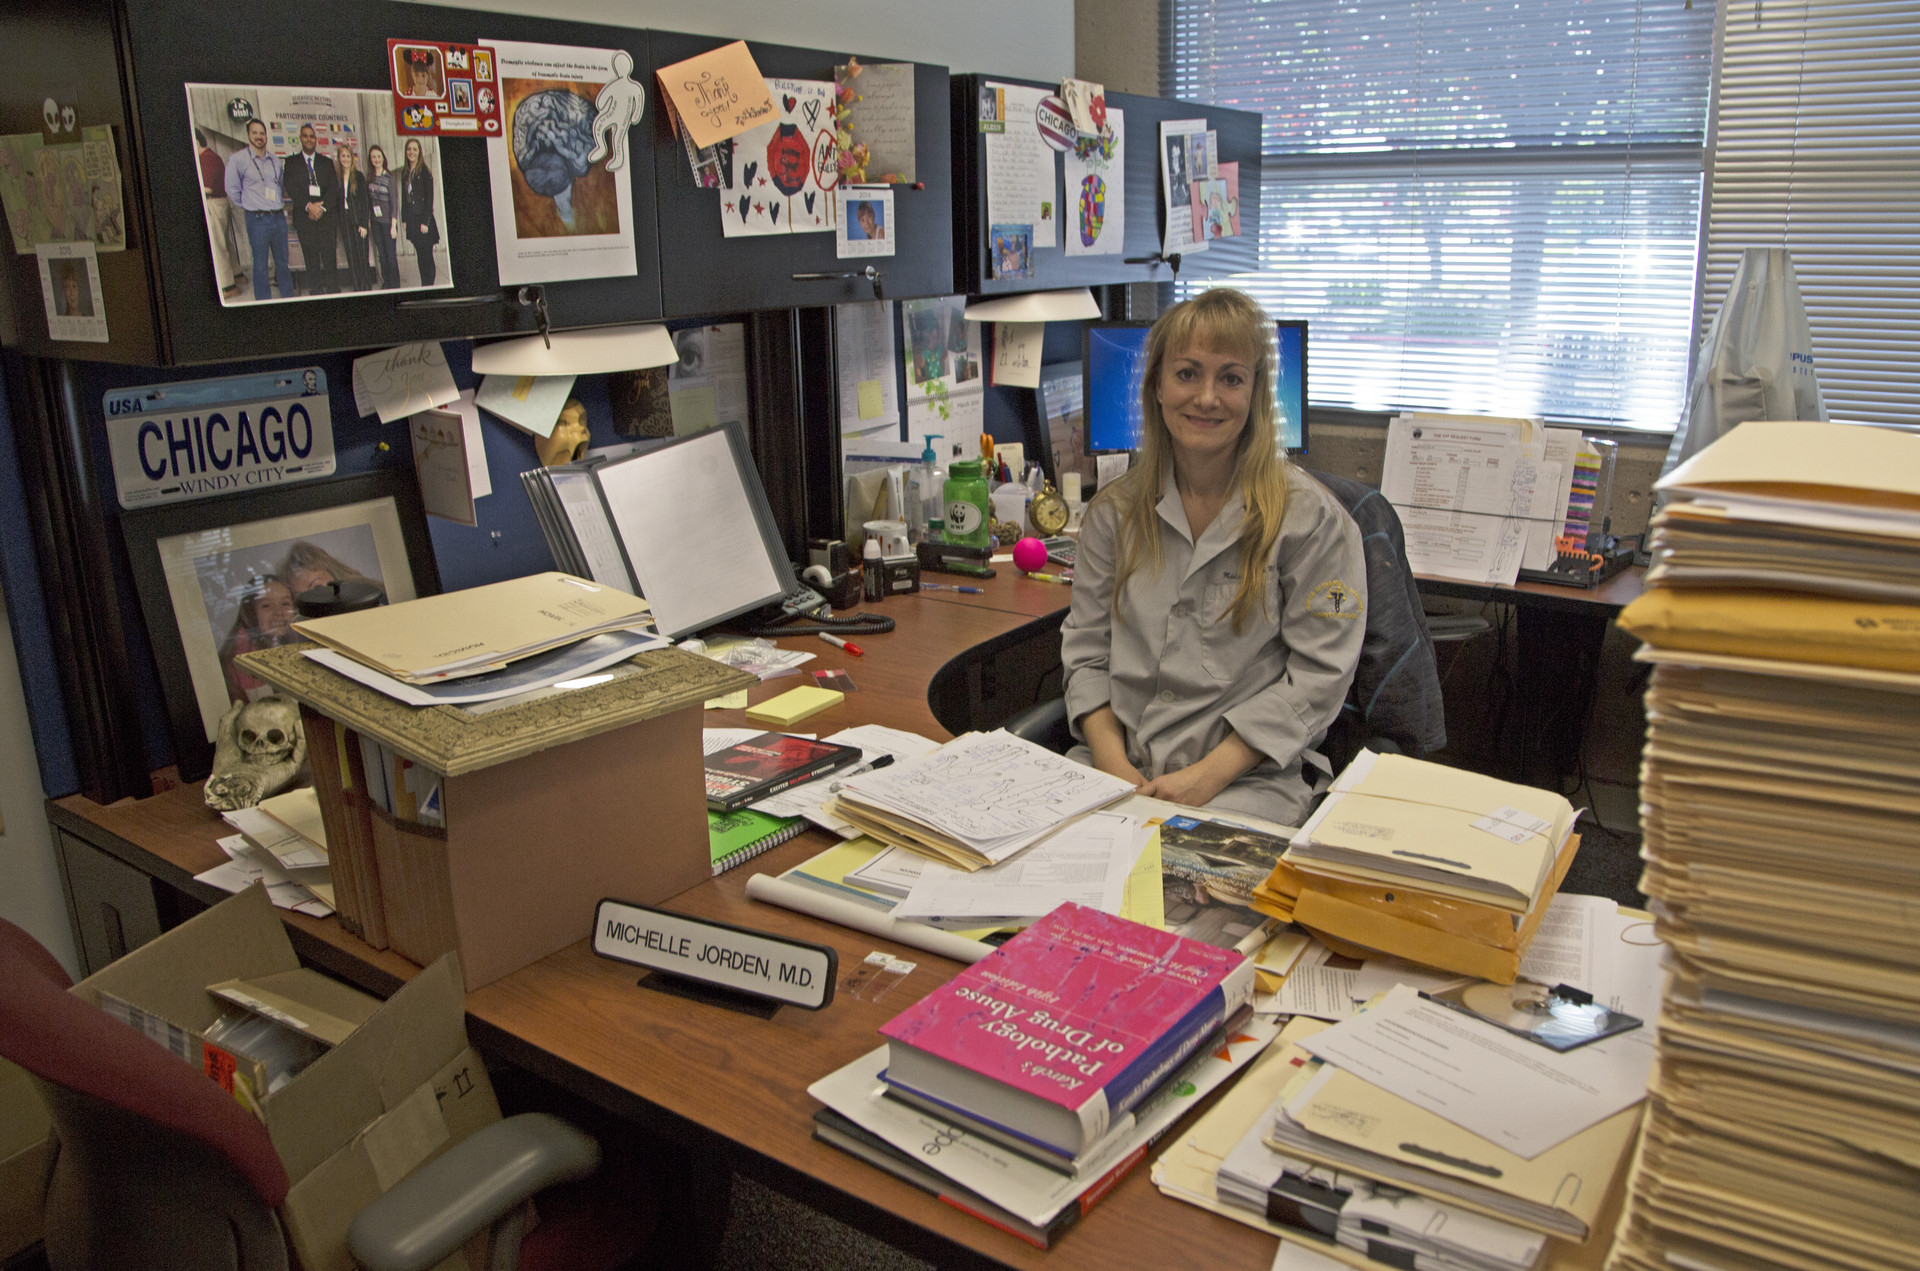 Completed and reports for review are stacked high on the desk of Assistant Medical Examiner Michelle Jorden.